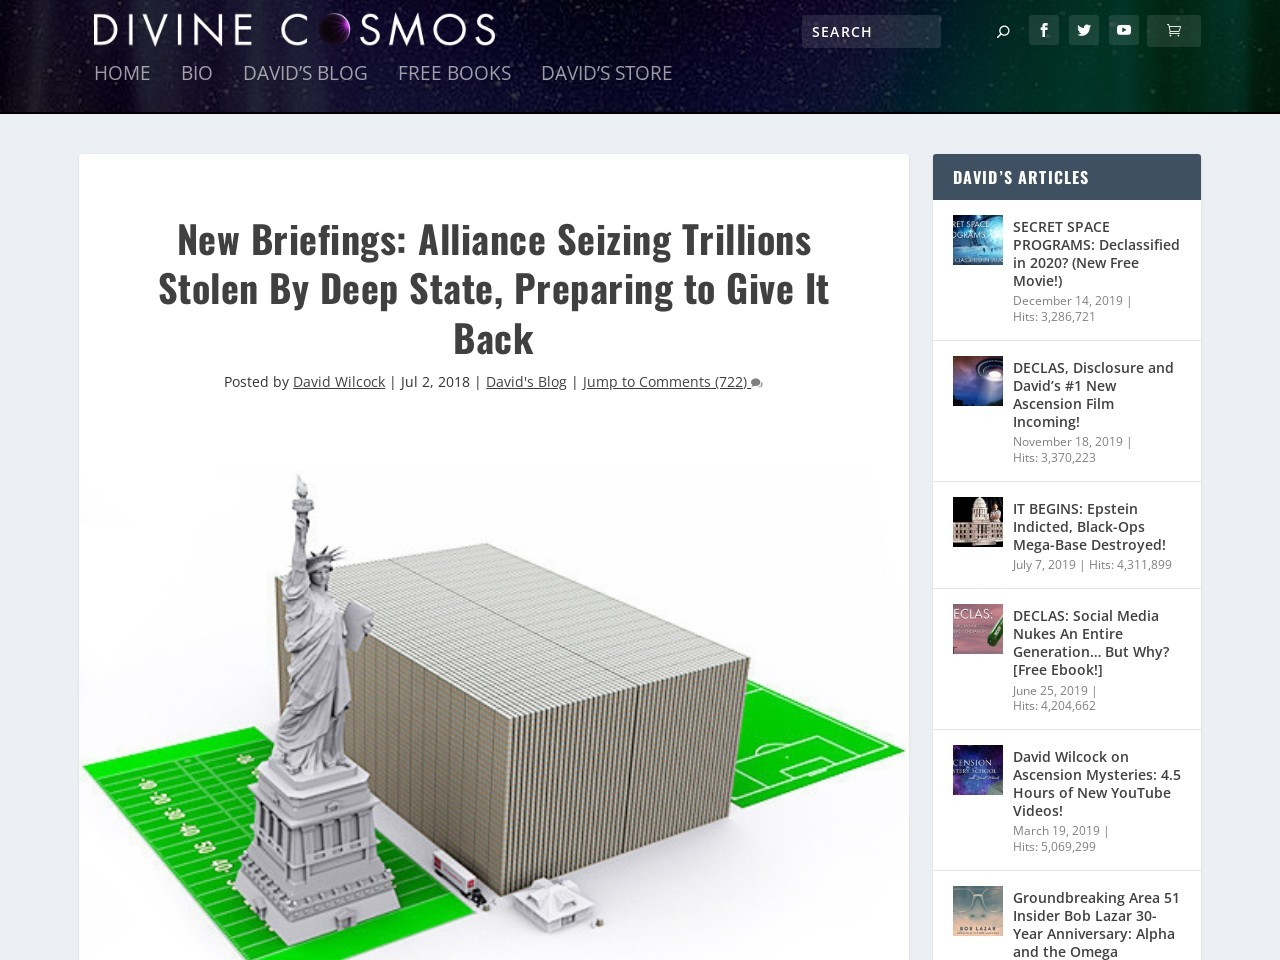 New Briefings: Alliance Seizing Trillions Stolen By Deep State, Preparing to Give It Back